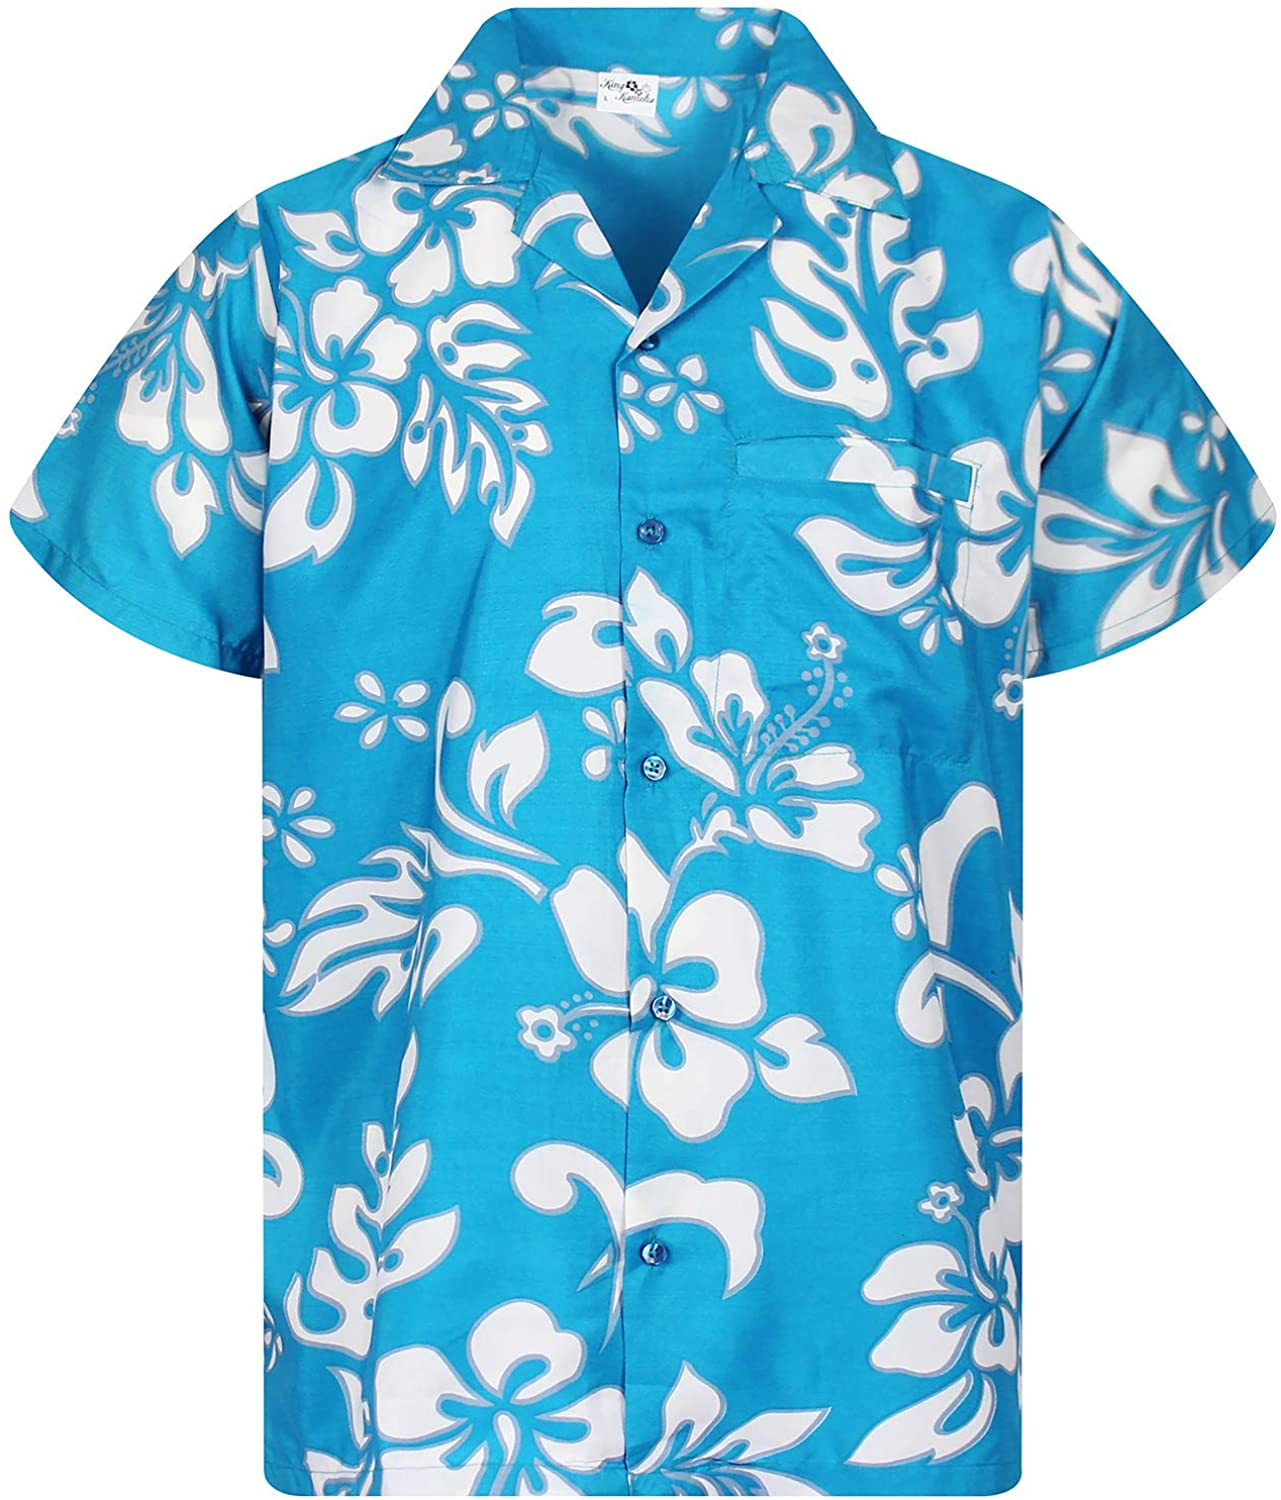 King Kameha Hawaiian Camicia per Uomo Funky Casual Button Down Very Loud Shortsleeve Hibiscus Unisex